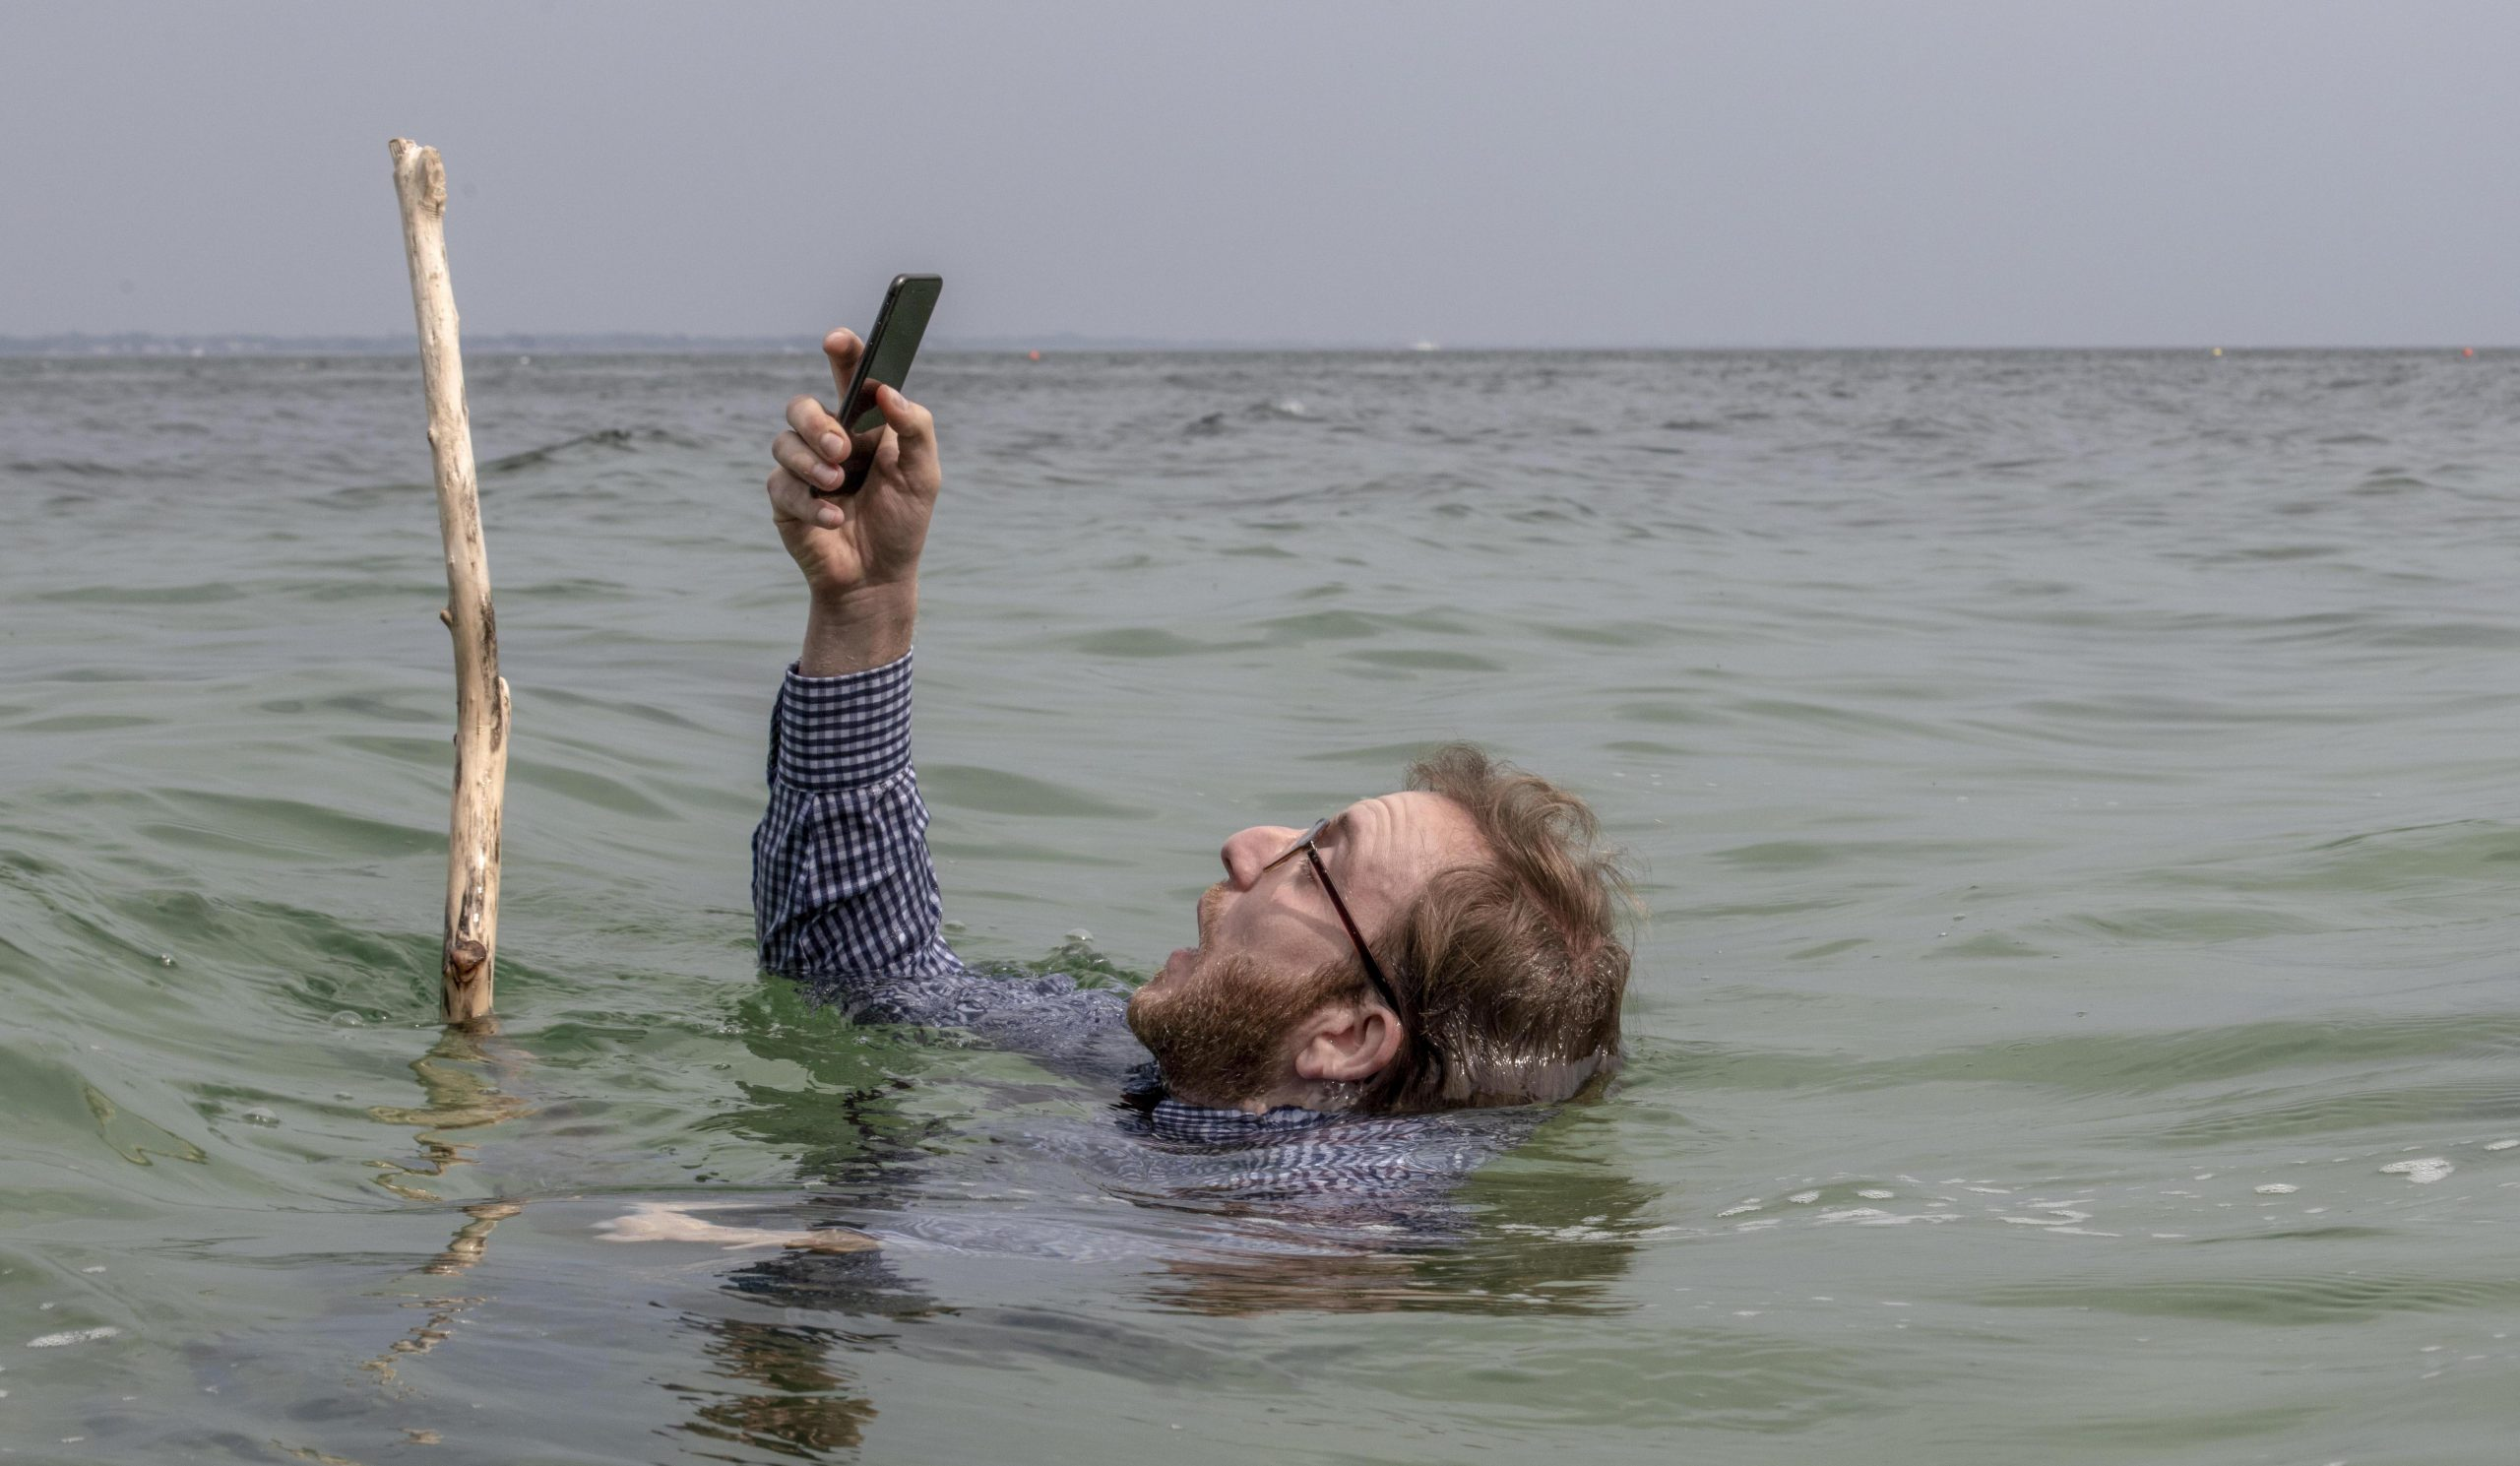 A men risks drowning while looking at his phone, in a Selfie scene